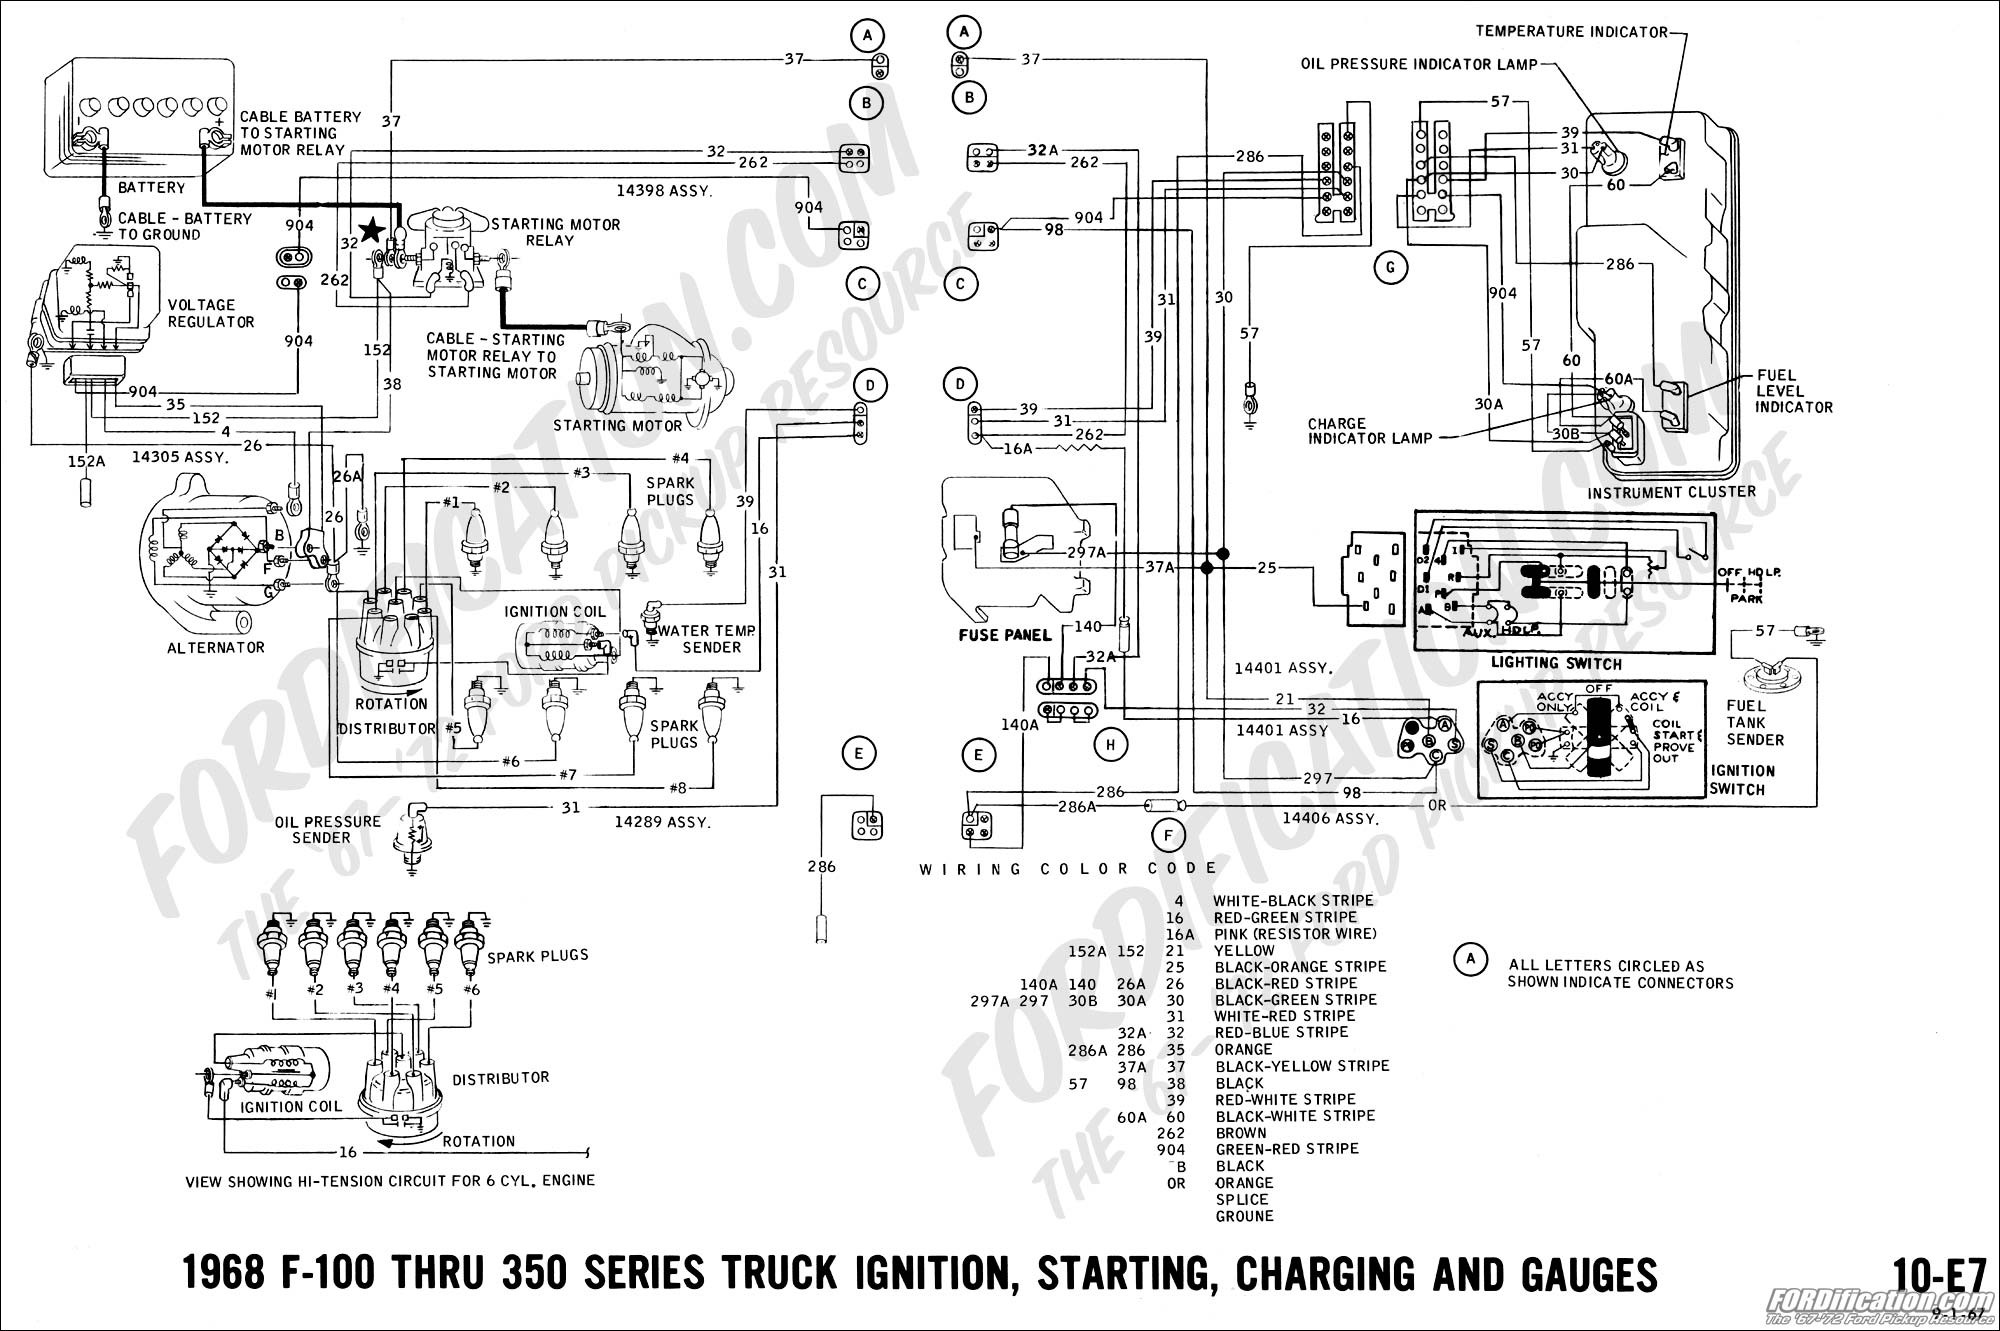 Ford F150 5 4 Engine Diagram 2 ford Truck Technical Drawings and Schematics Section H Wiring Of Ford F150 5 4 Engine Diagram 2